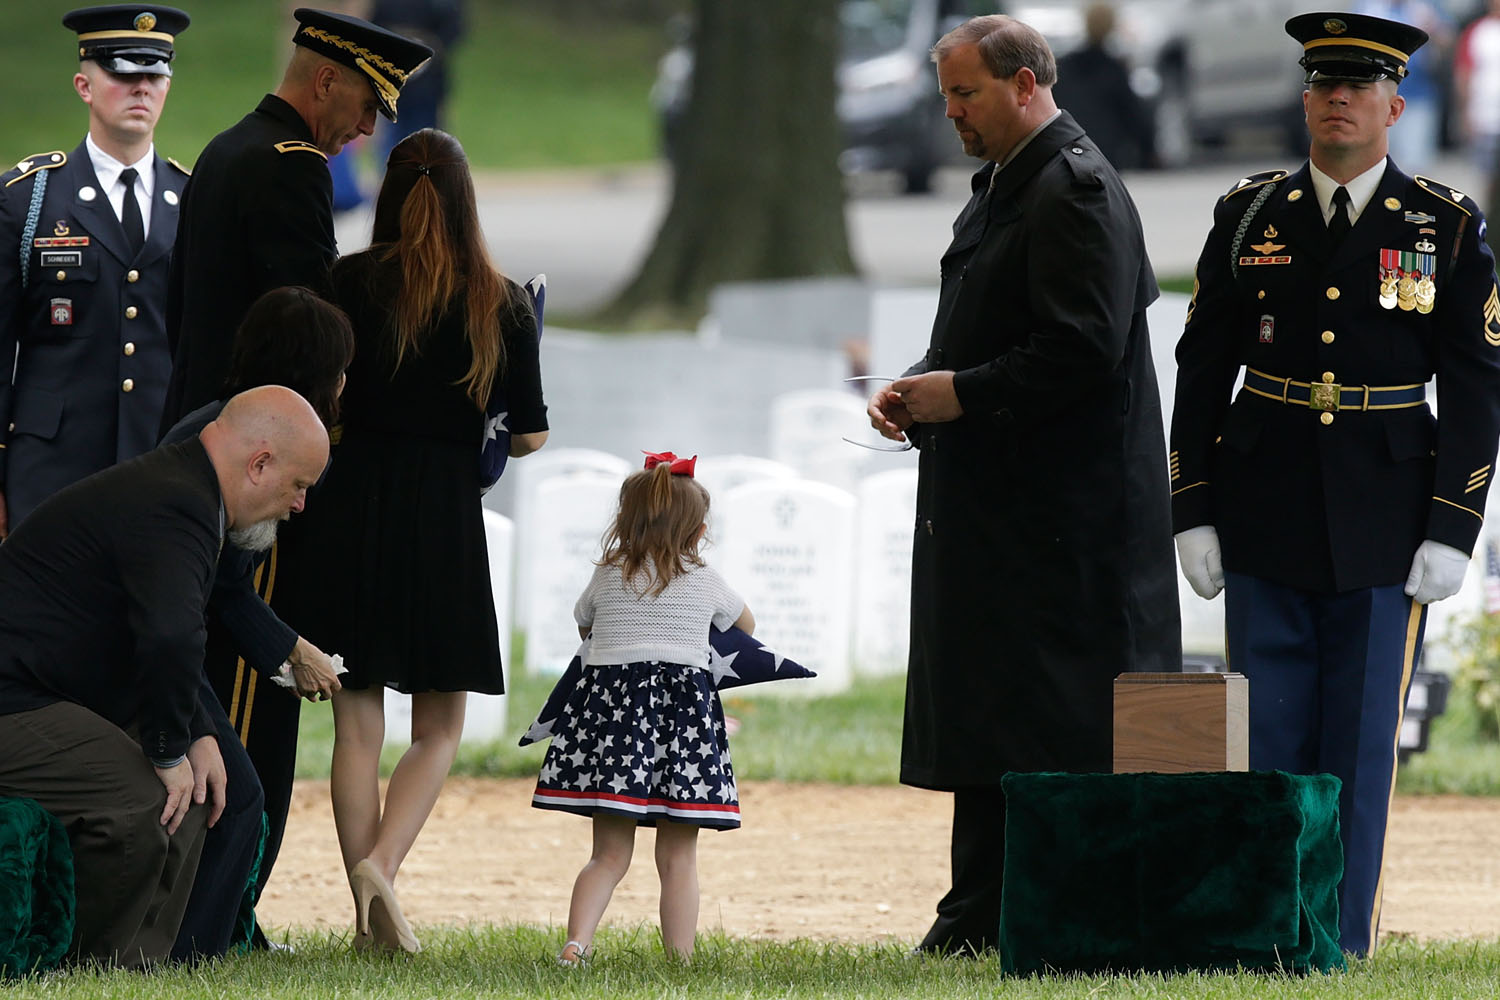 May 20, 2013. Four-year-old Sophia Phillips carries an American flag presented to her during a burial service for her father, Staff Sergeant Francis G. Phillips, at Arlington National Cemetery in Arlington Va.